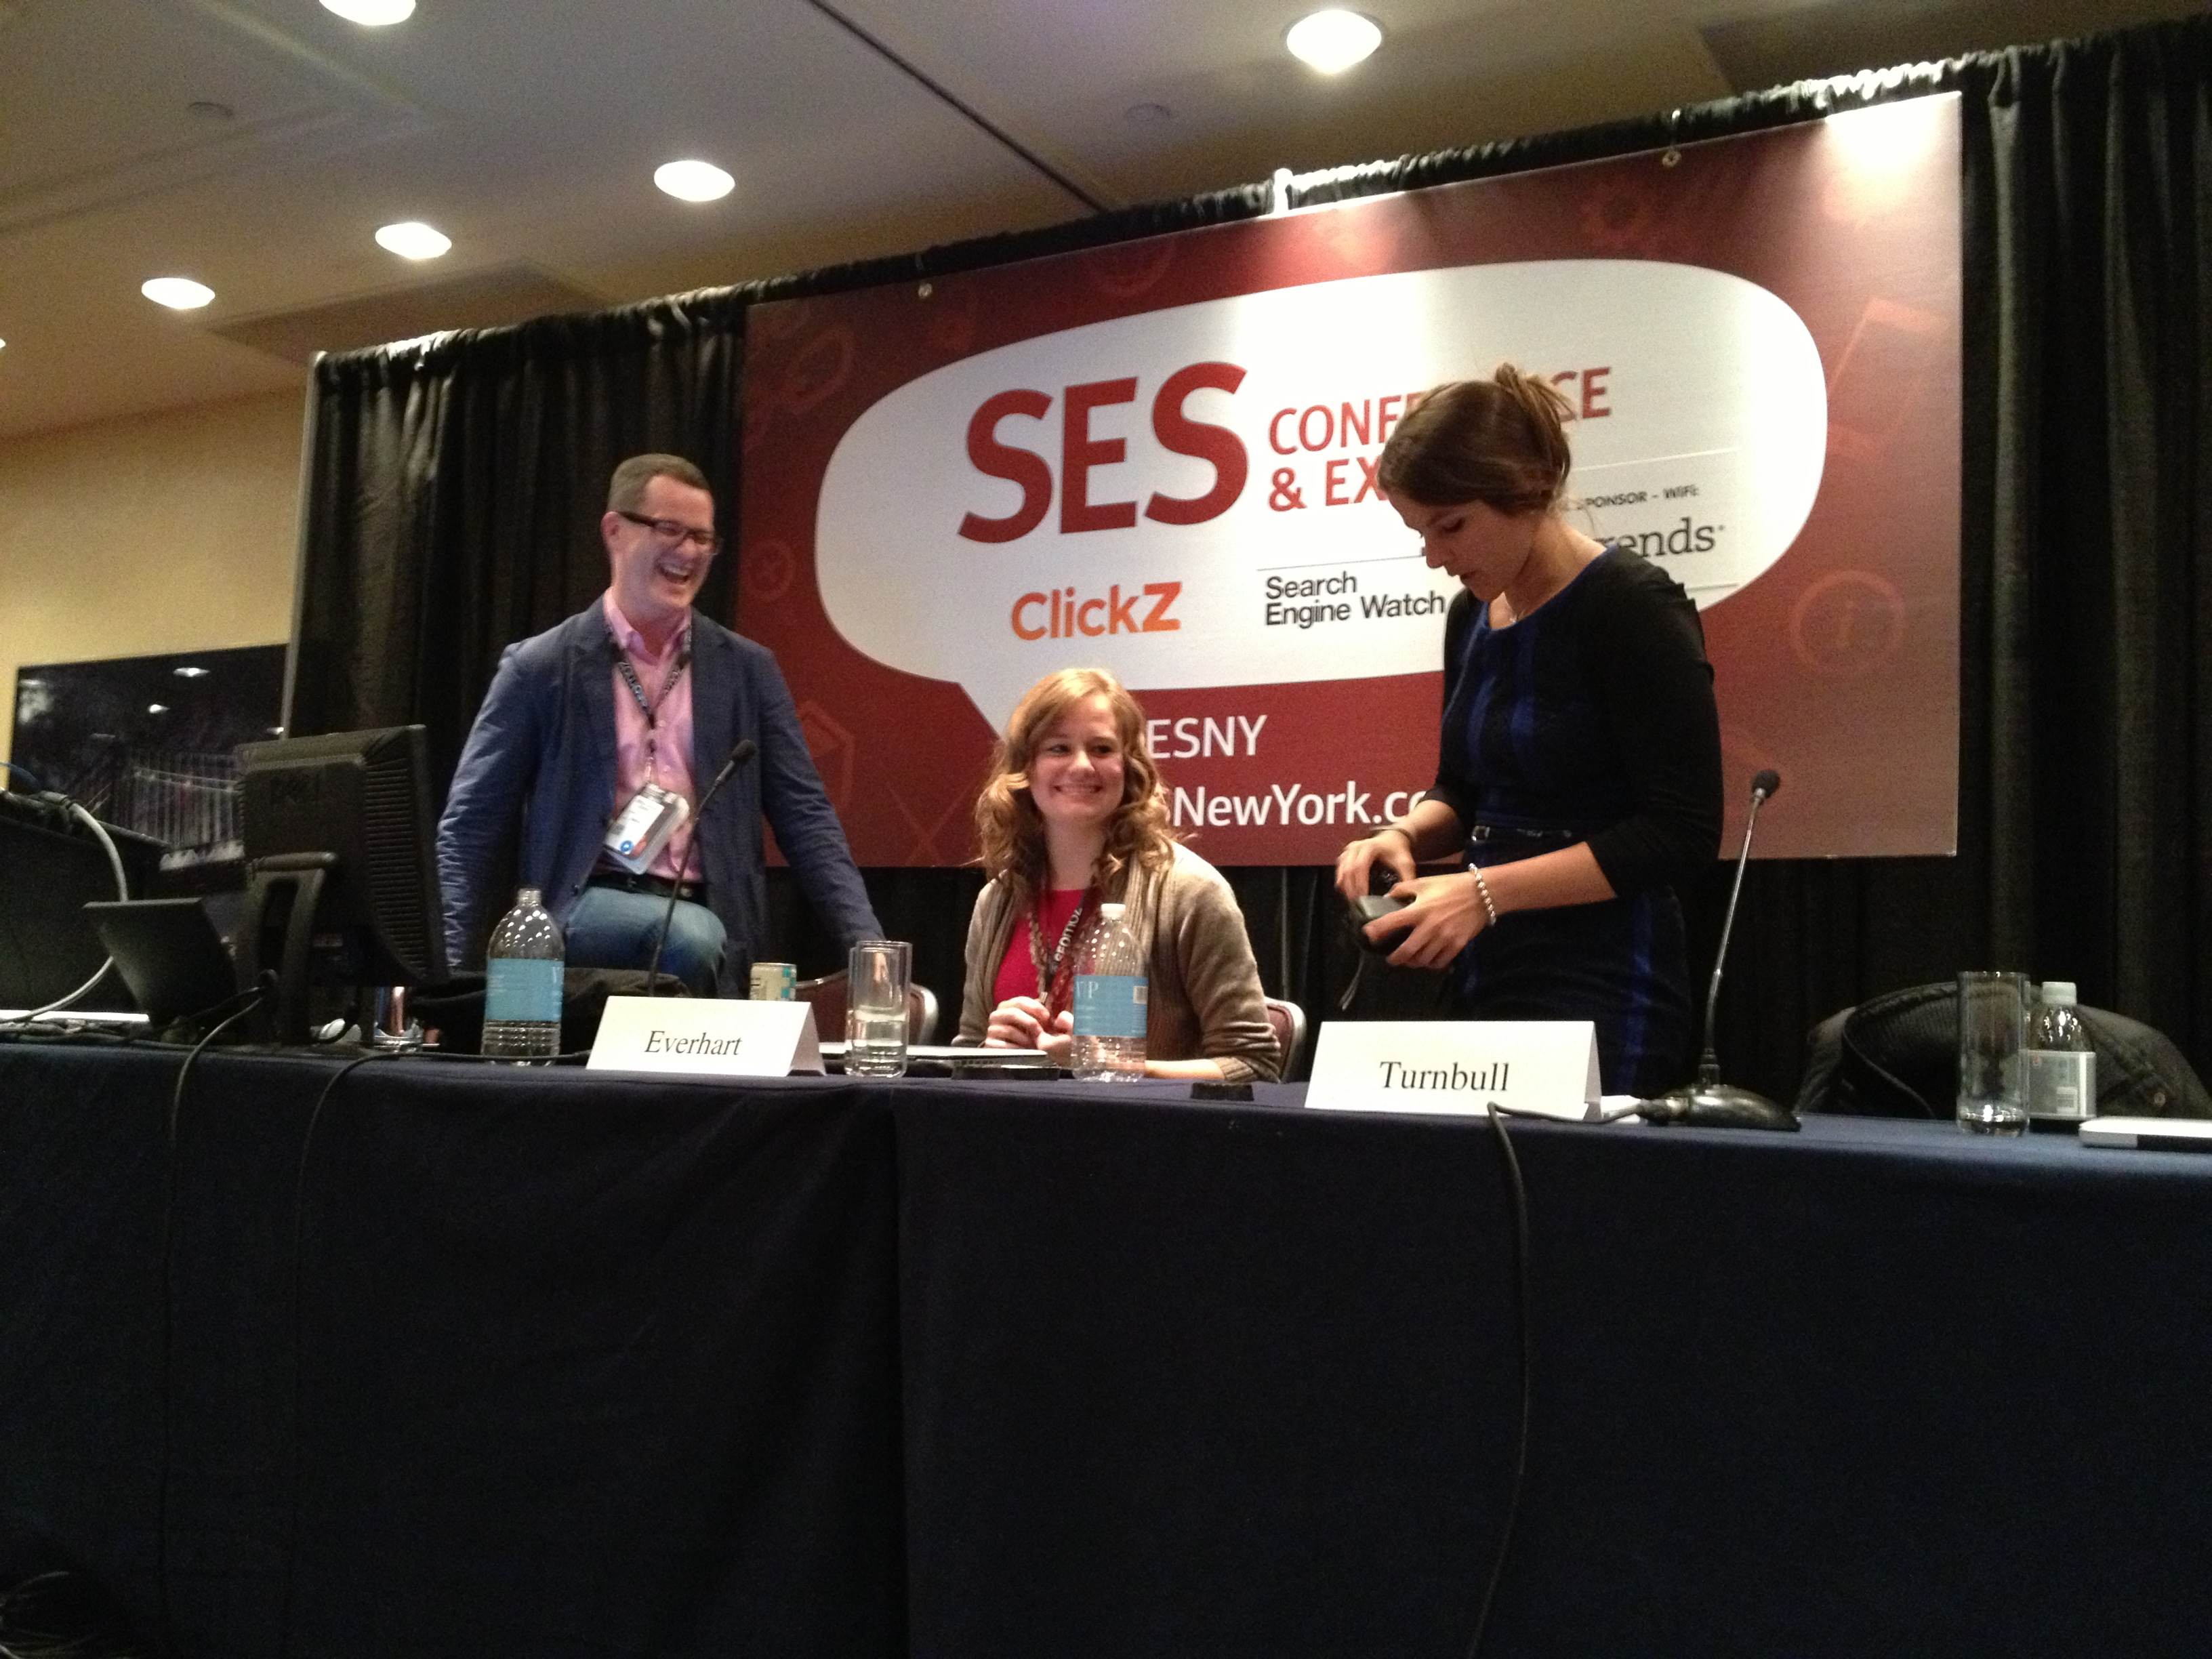 SES NY session with Everhart and SEO Jo Blogs